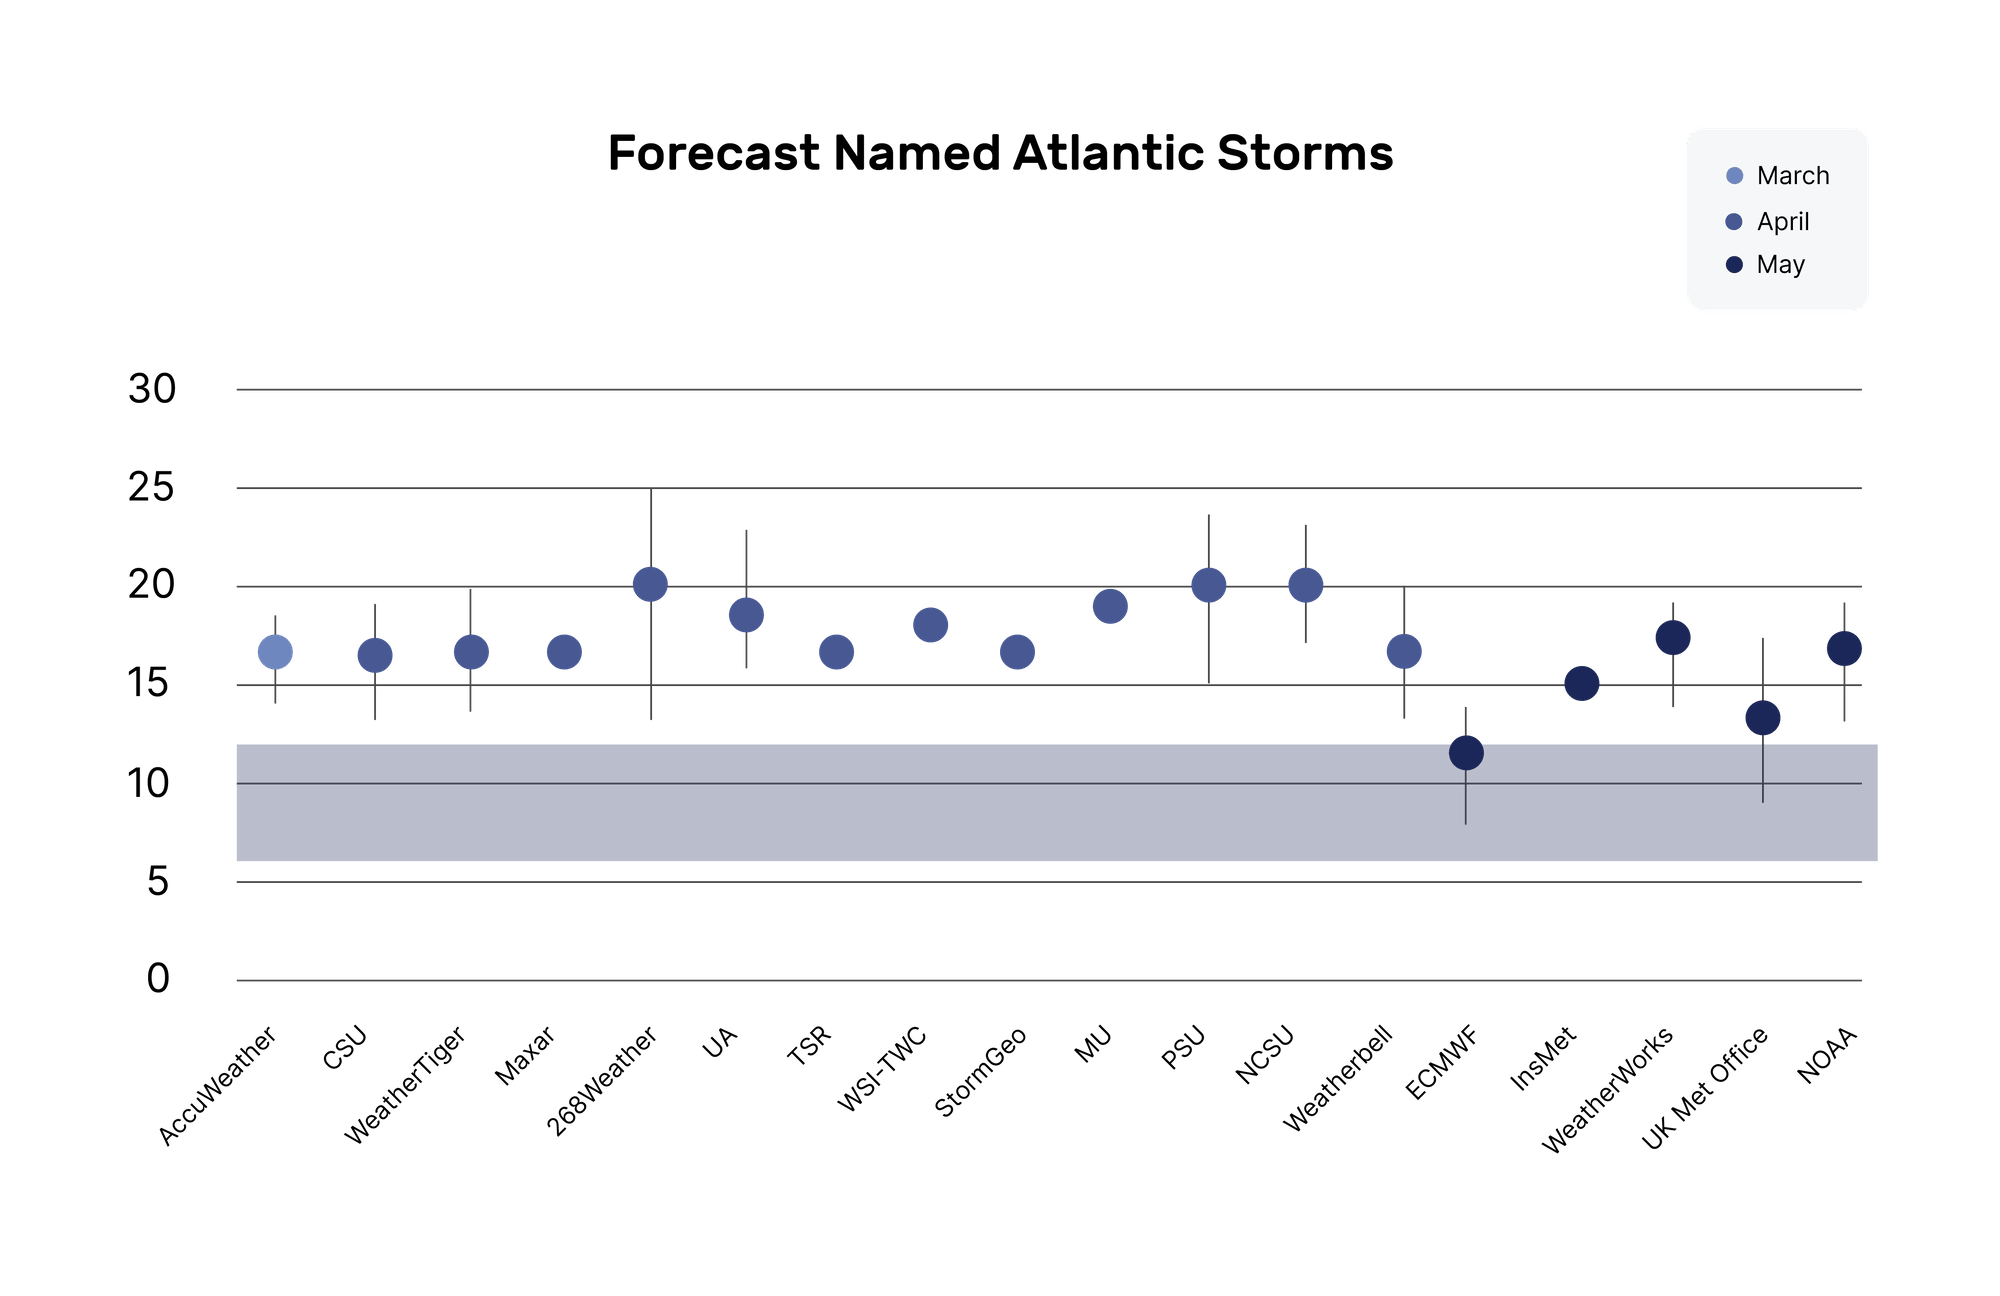 Chart of forecasted names for hurricanes